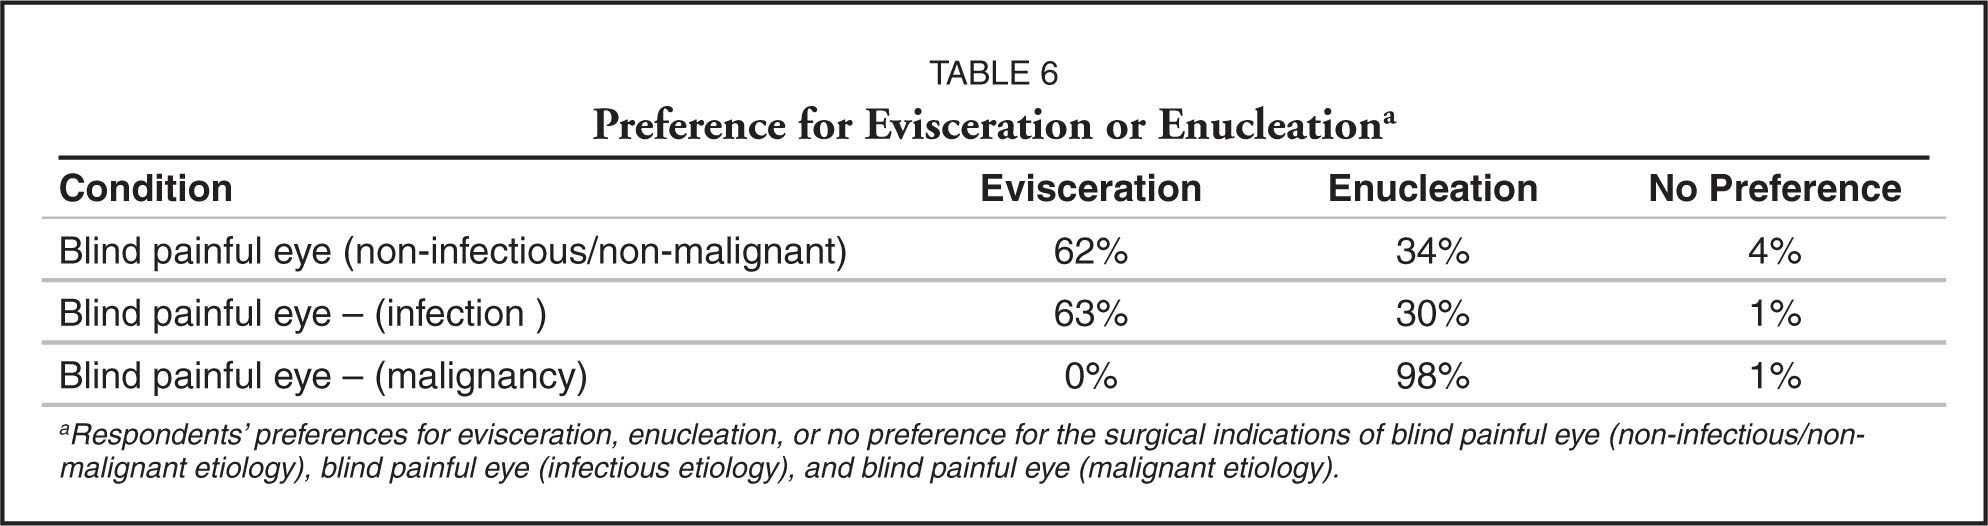 Preference for Evisceration or Enucleationa